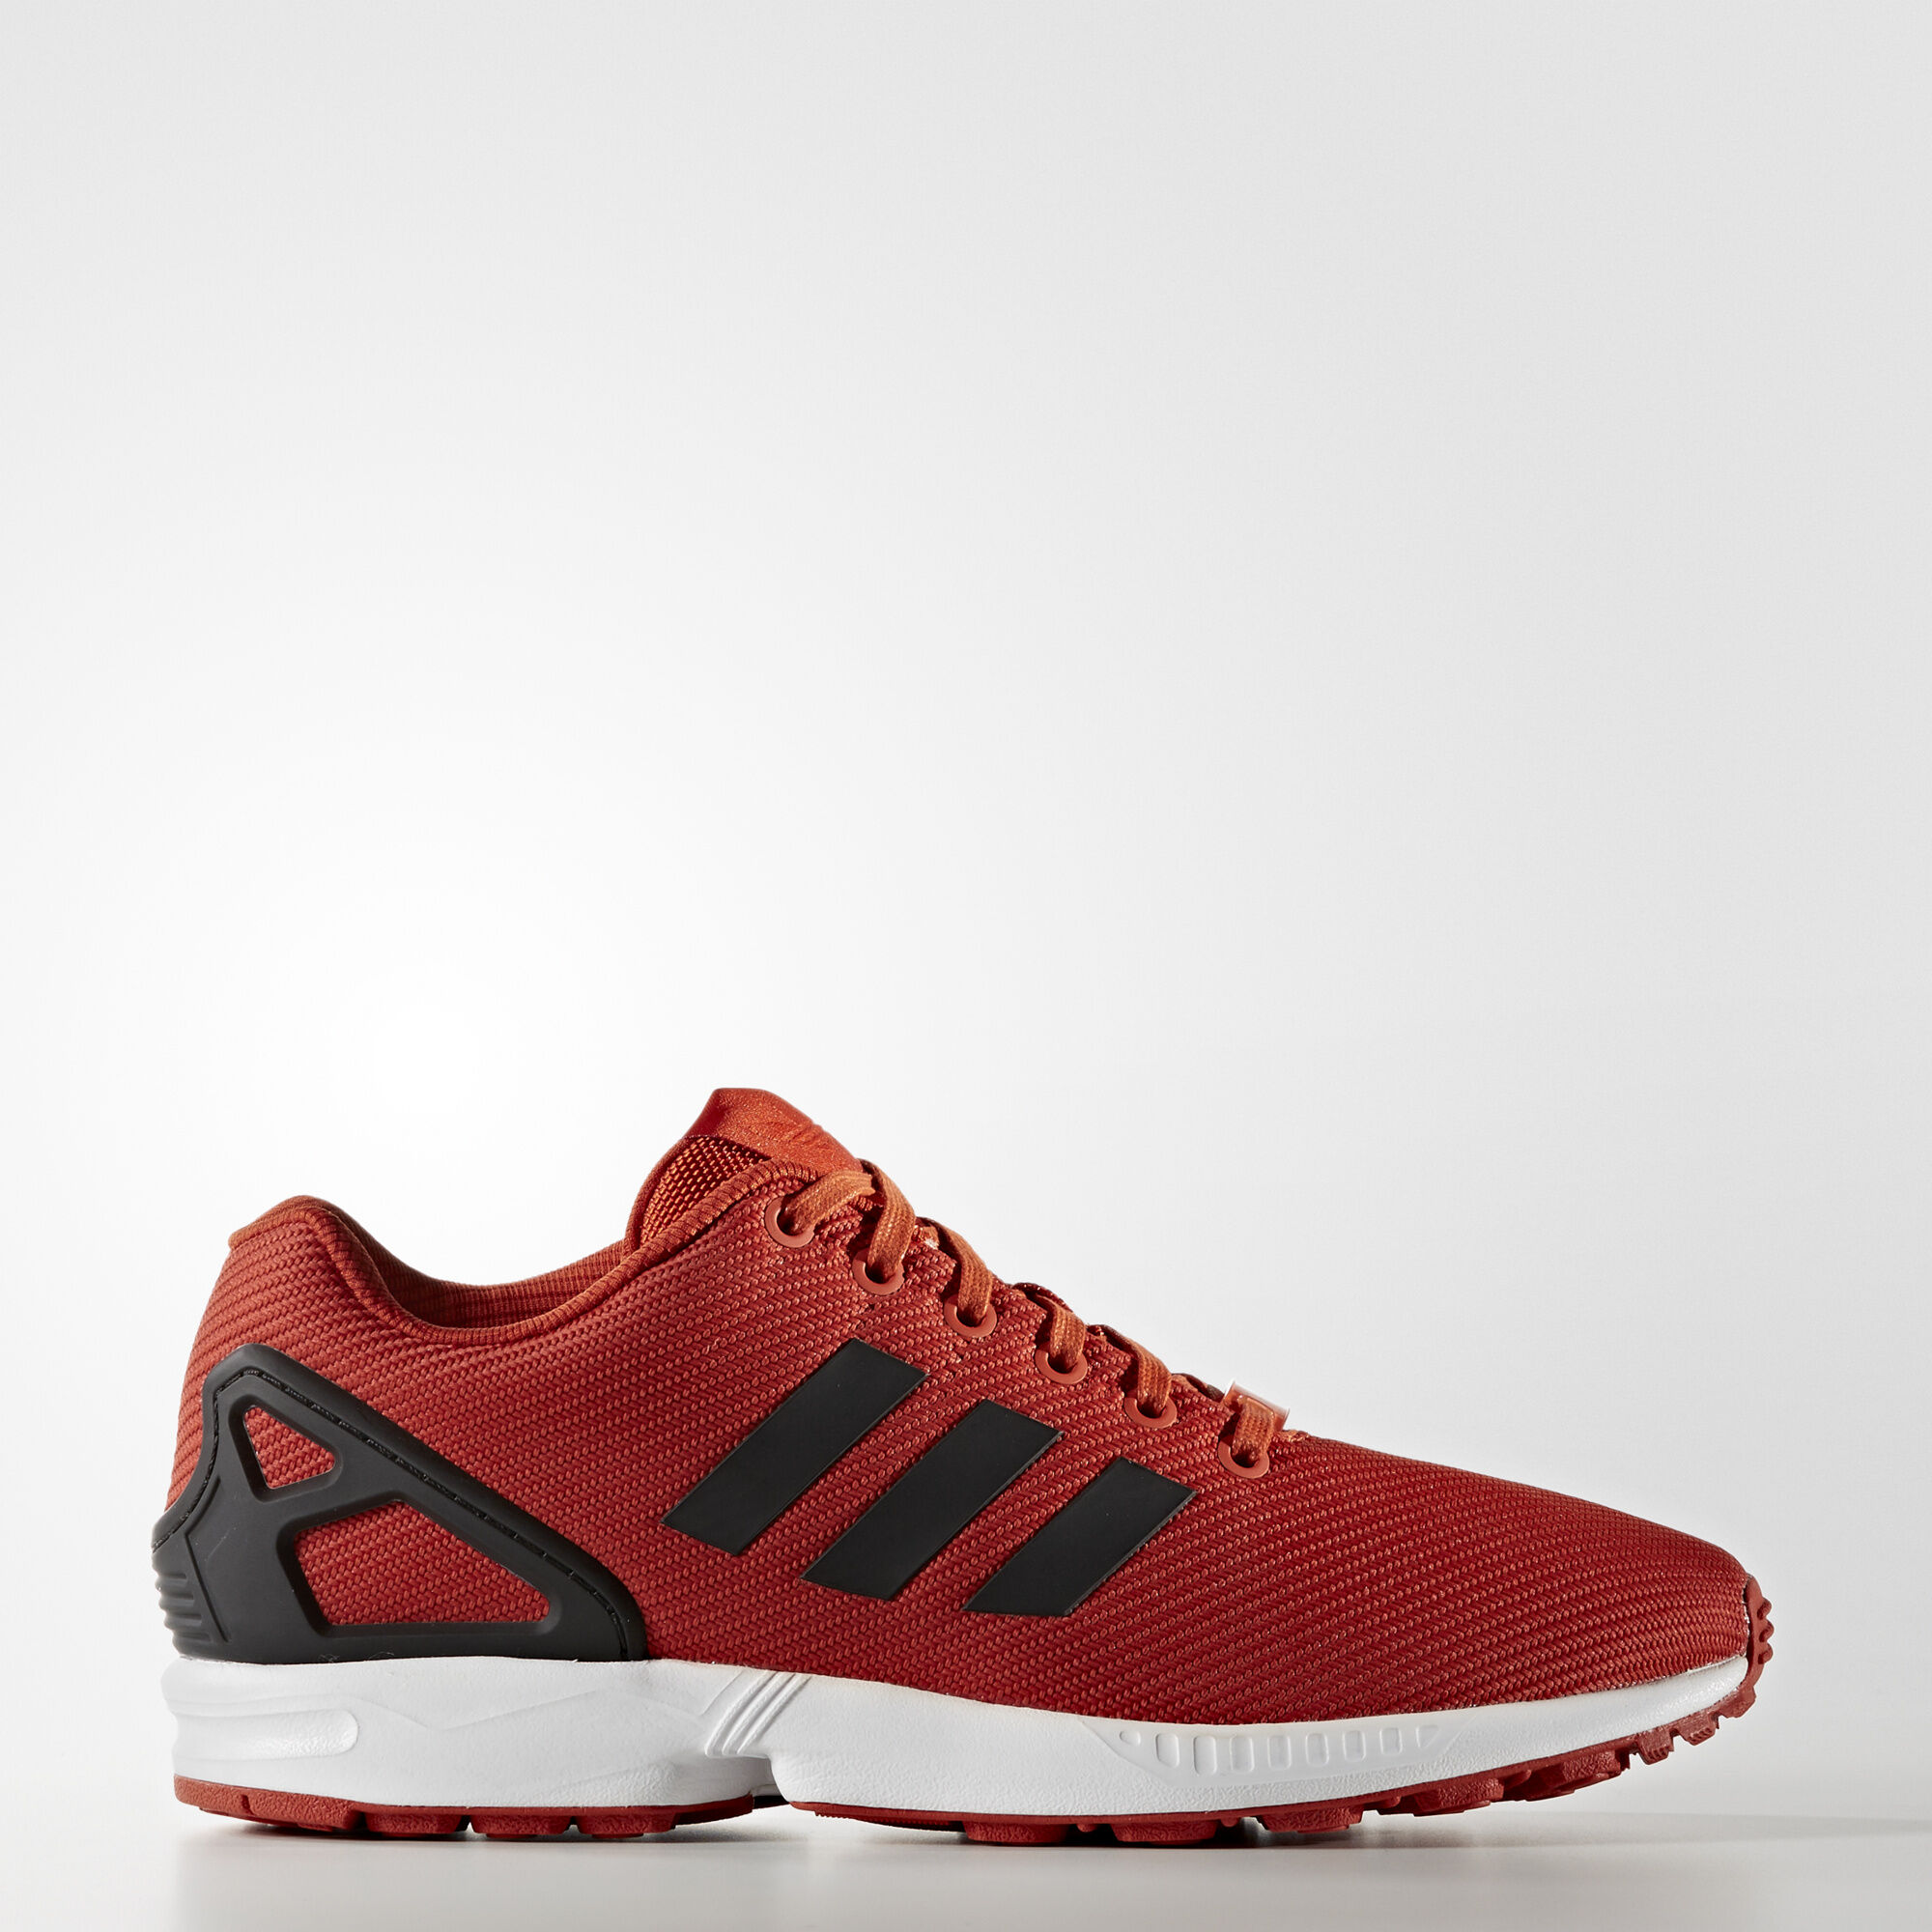 3af064fcf859c Buy cheap Online - adidas zx flux red